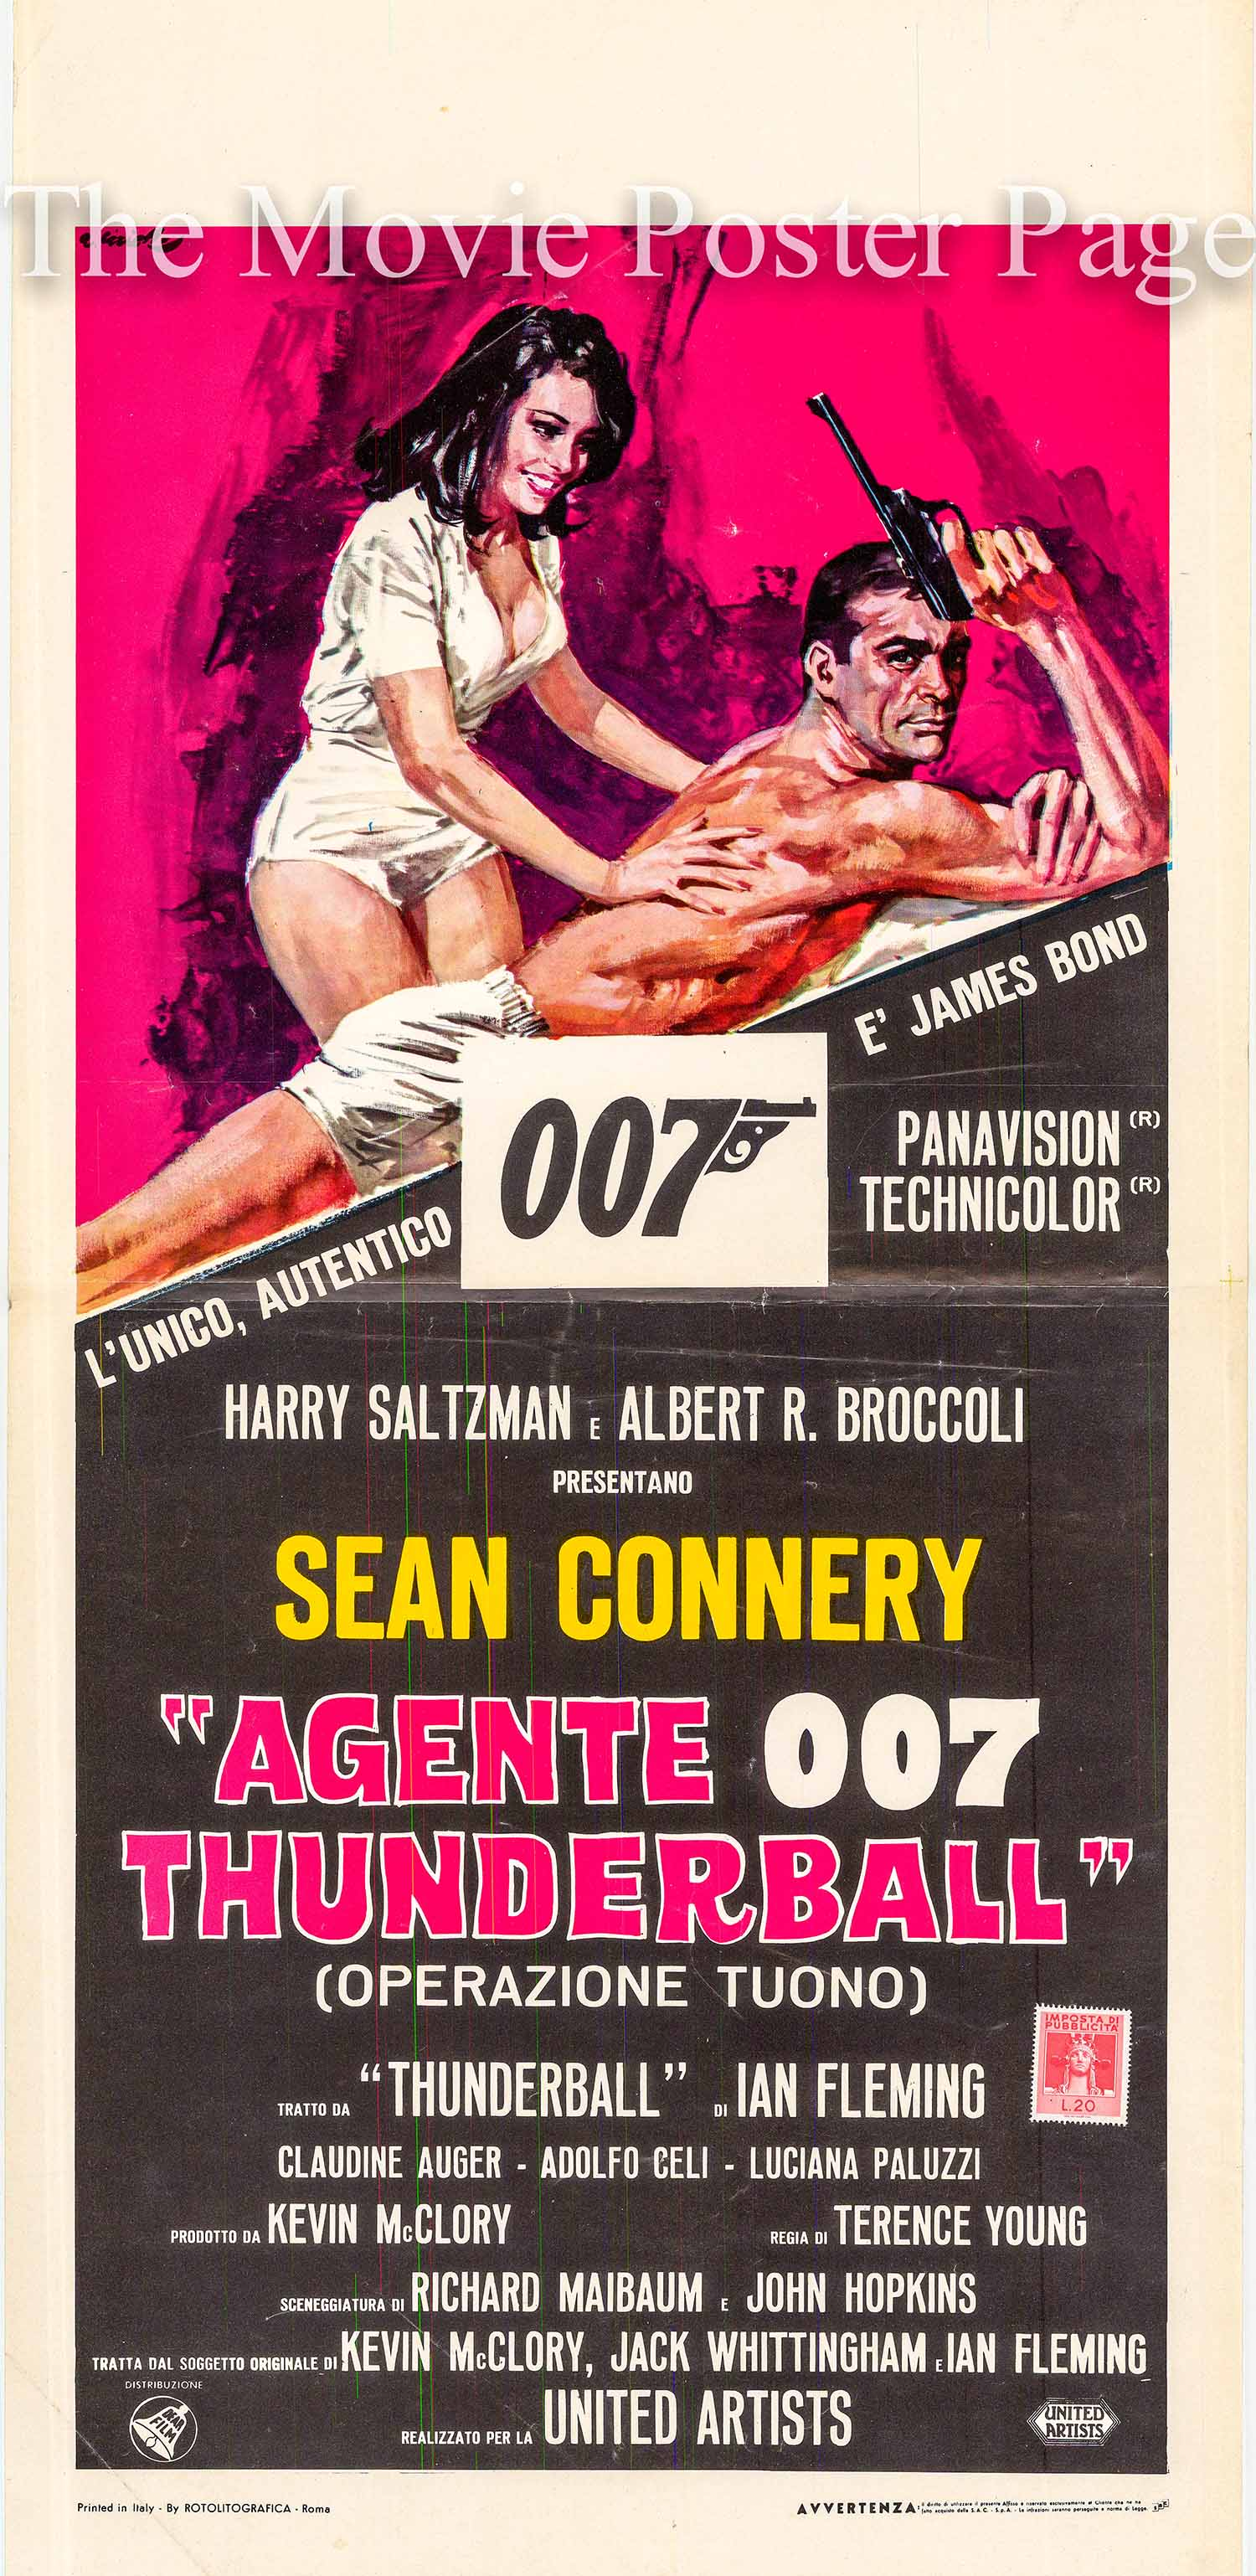 Pictured is the Italian locandina promotional movie poster for the 1965 Terence Young James Bond film Thunderball, starring Sean Connery.